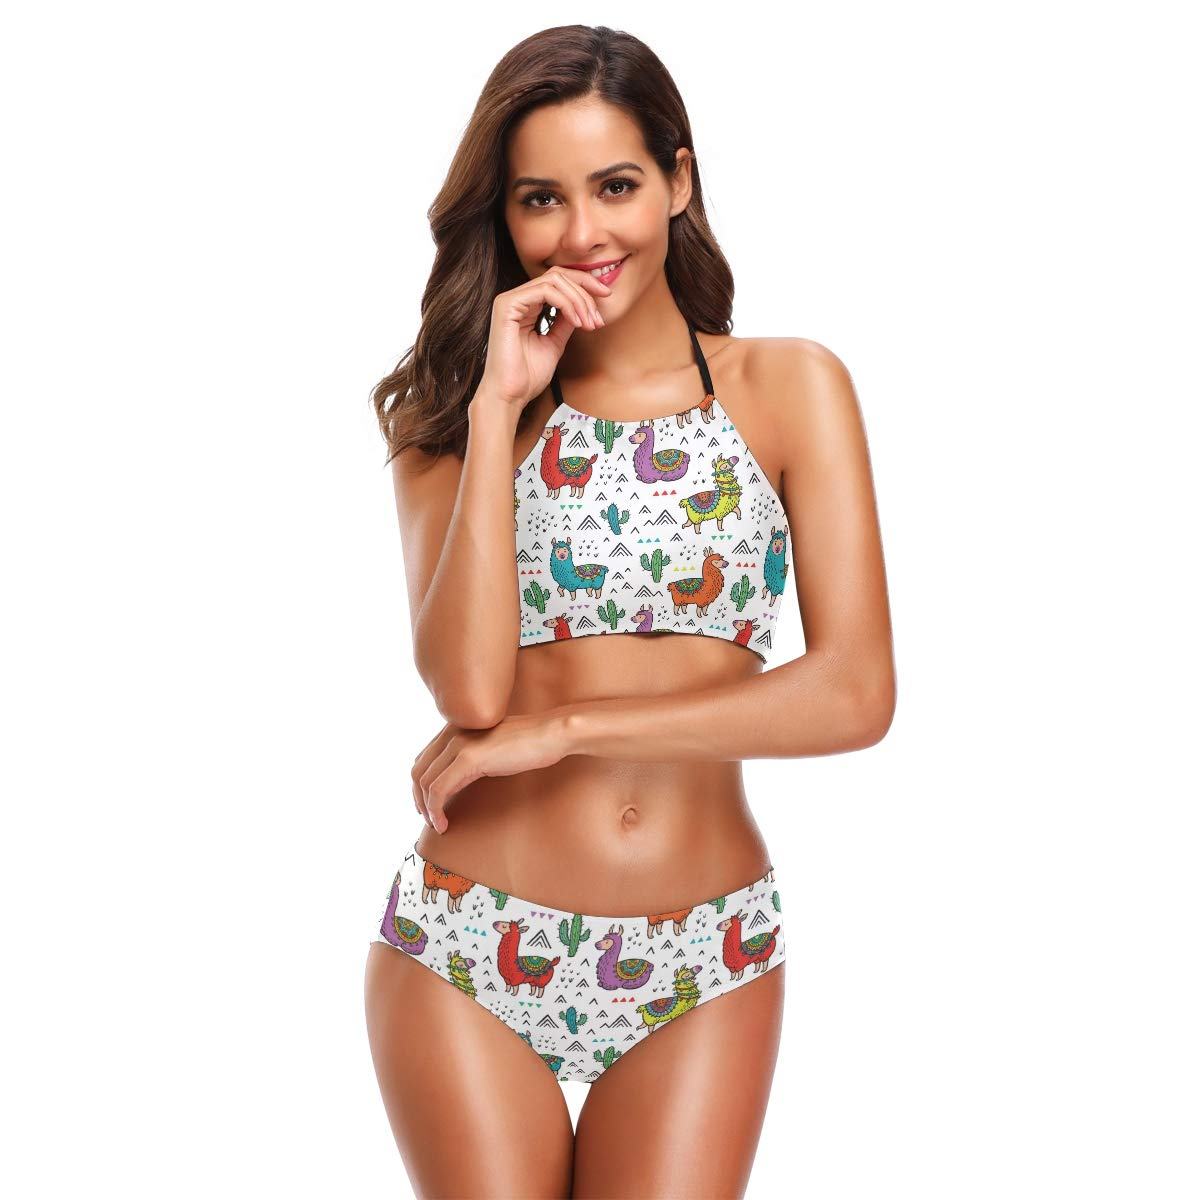 37f2a112acaac Amazon.com  TropicalLife Cute Animal Llama Cactus High Neck Halter Bikini  Sets Swimsuit Bathing Suits for Teen Girls Women Ladies  Clothing